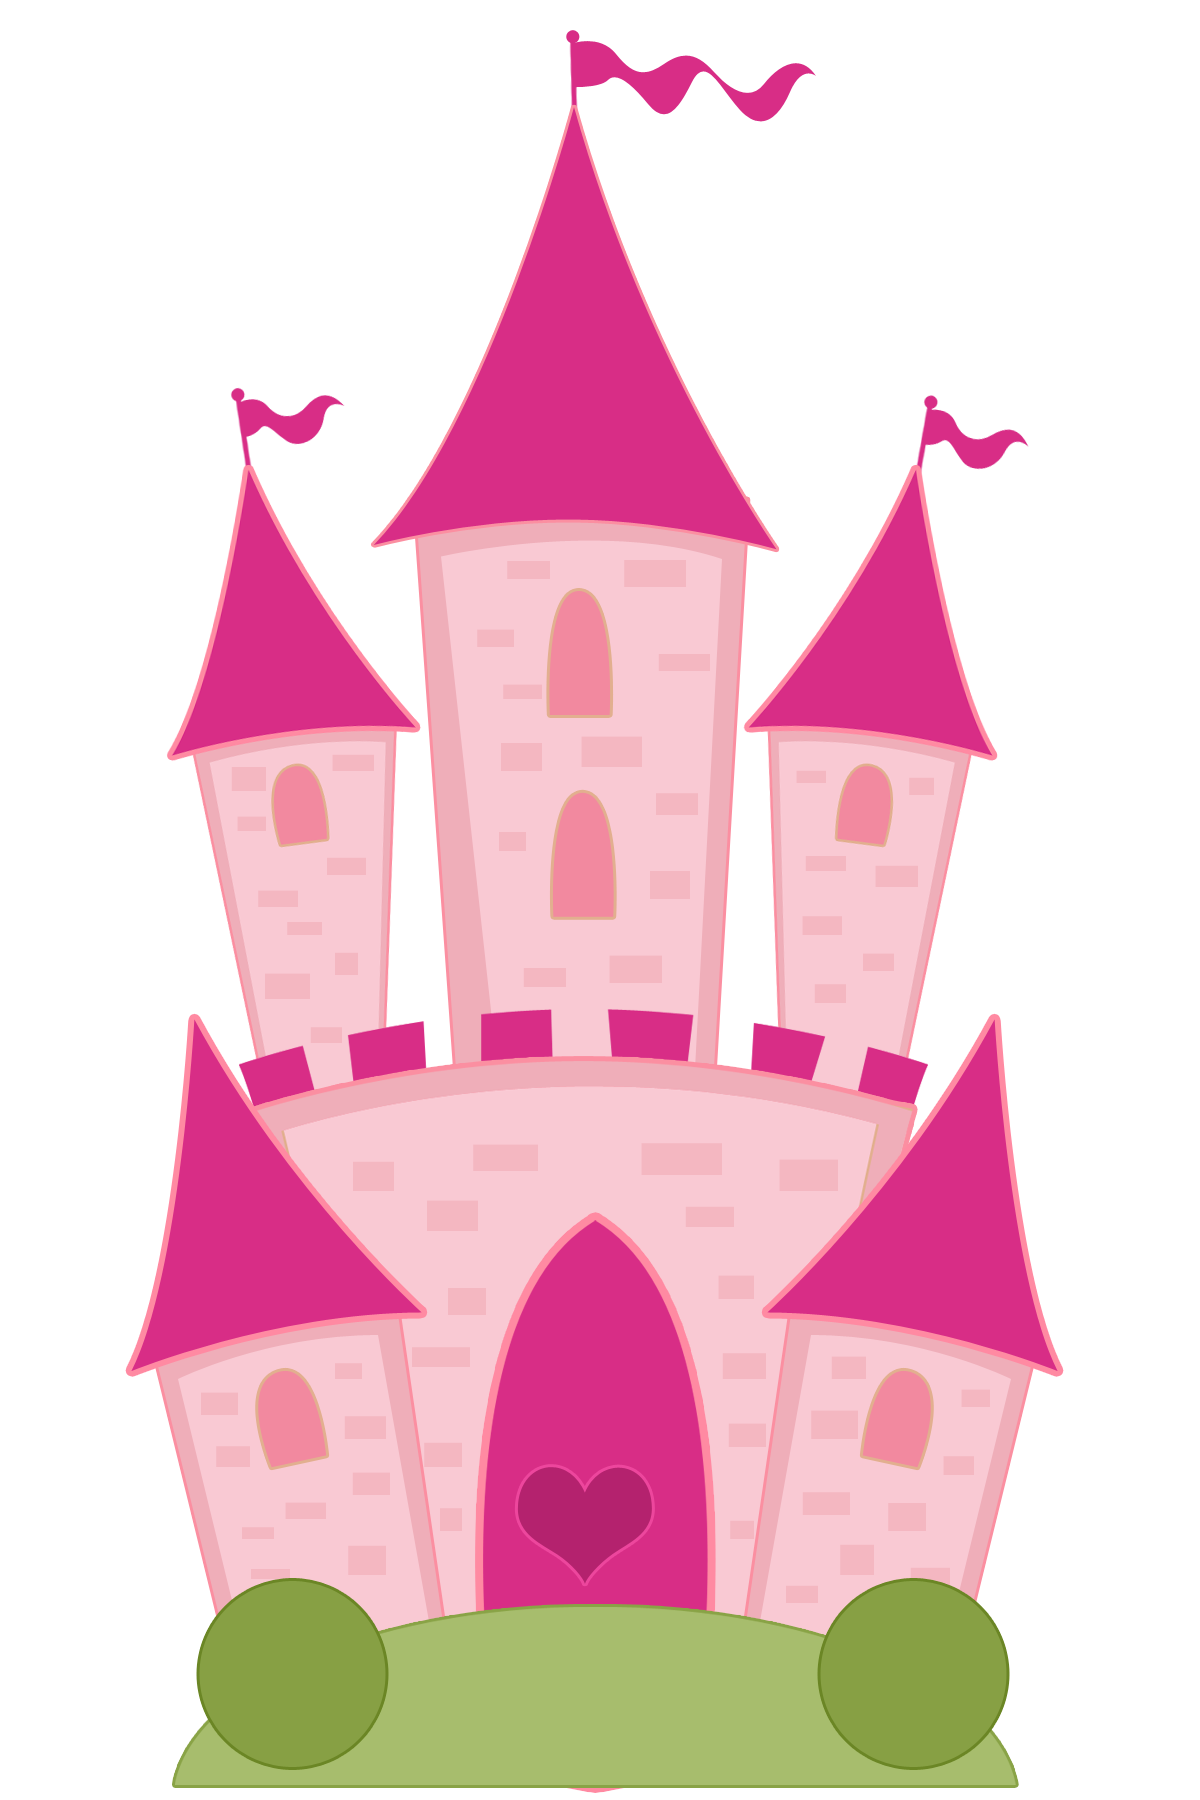 Castelo princesas download free clipart with a transparent.